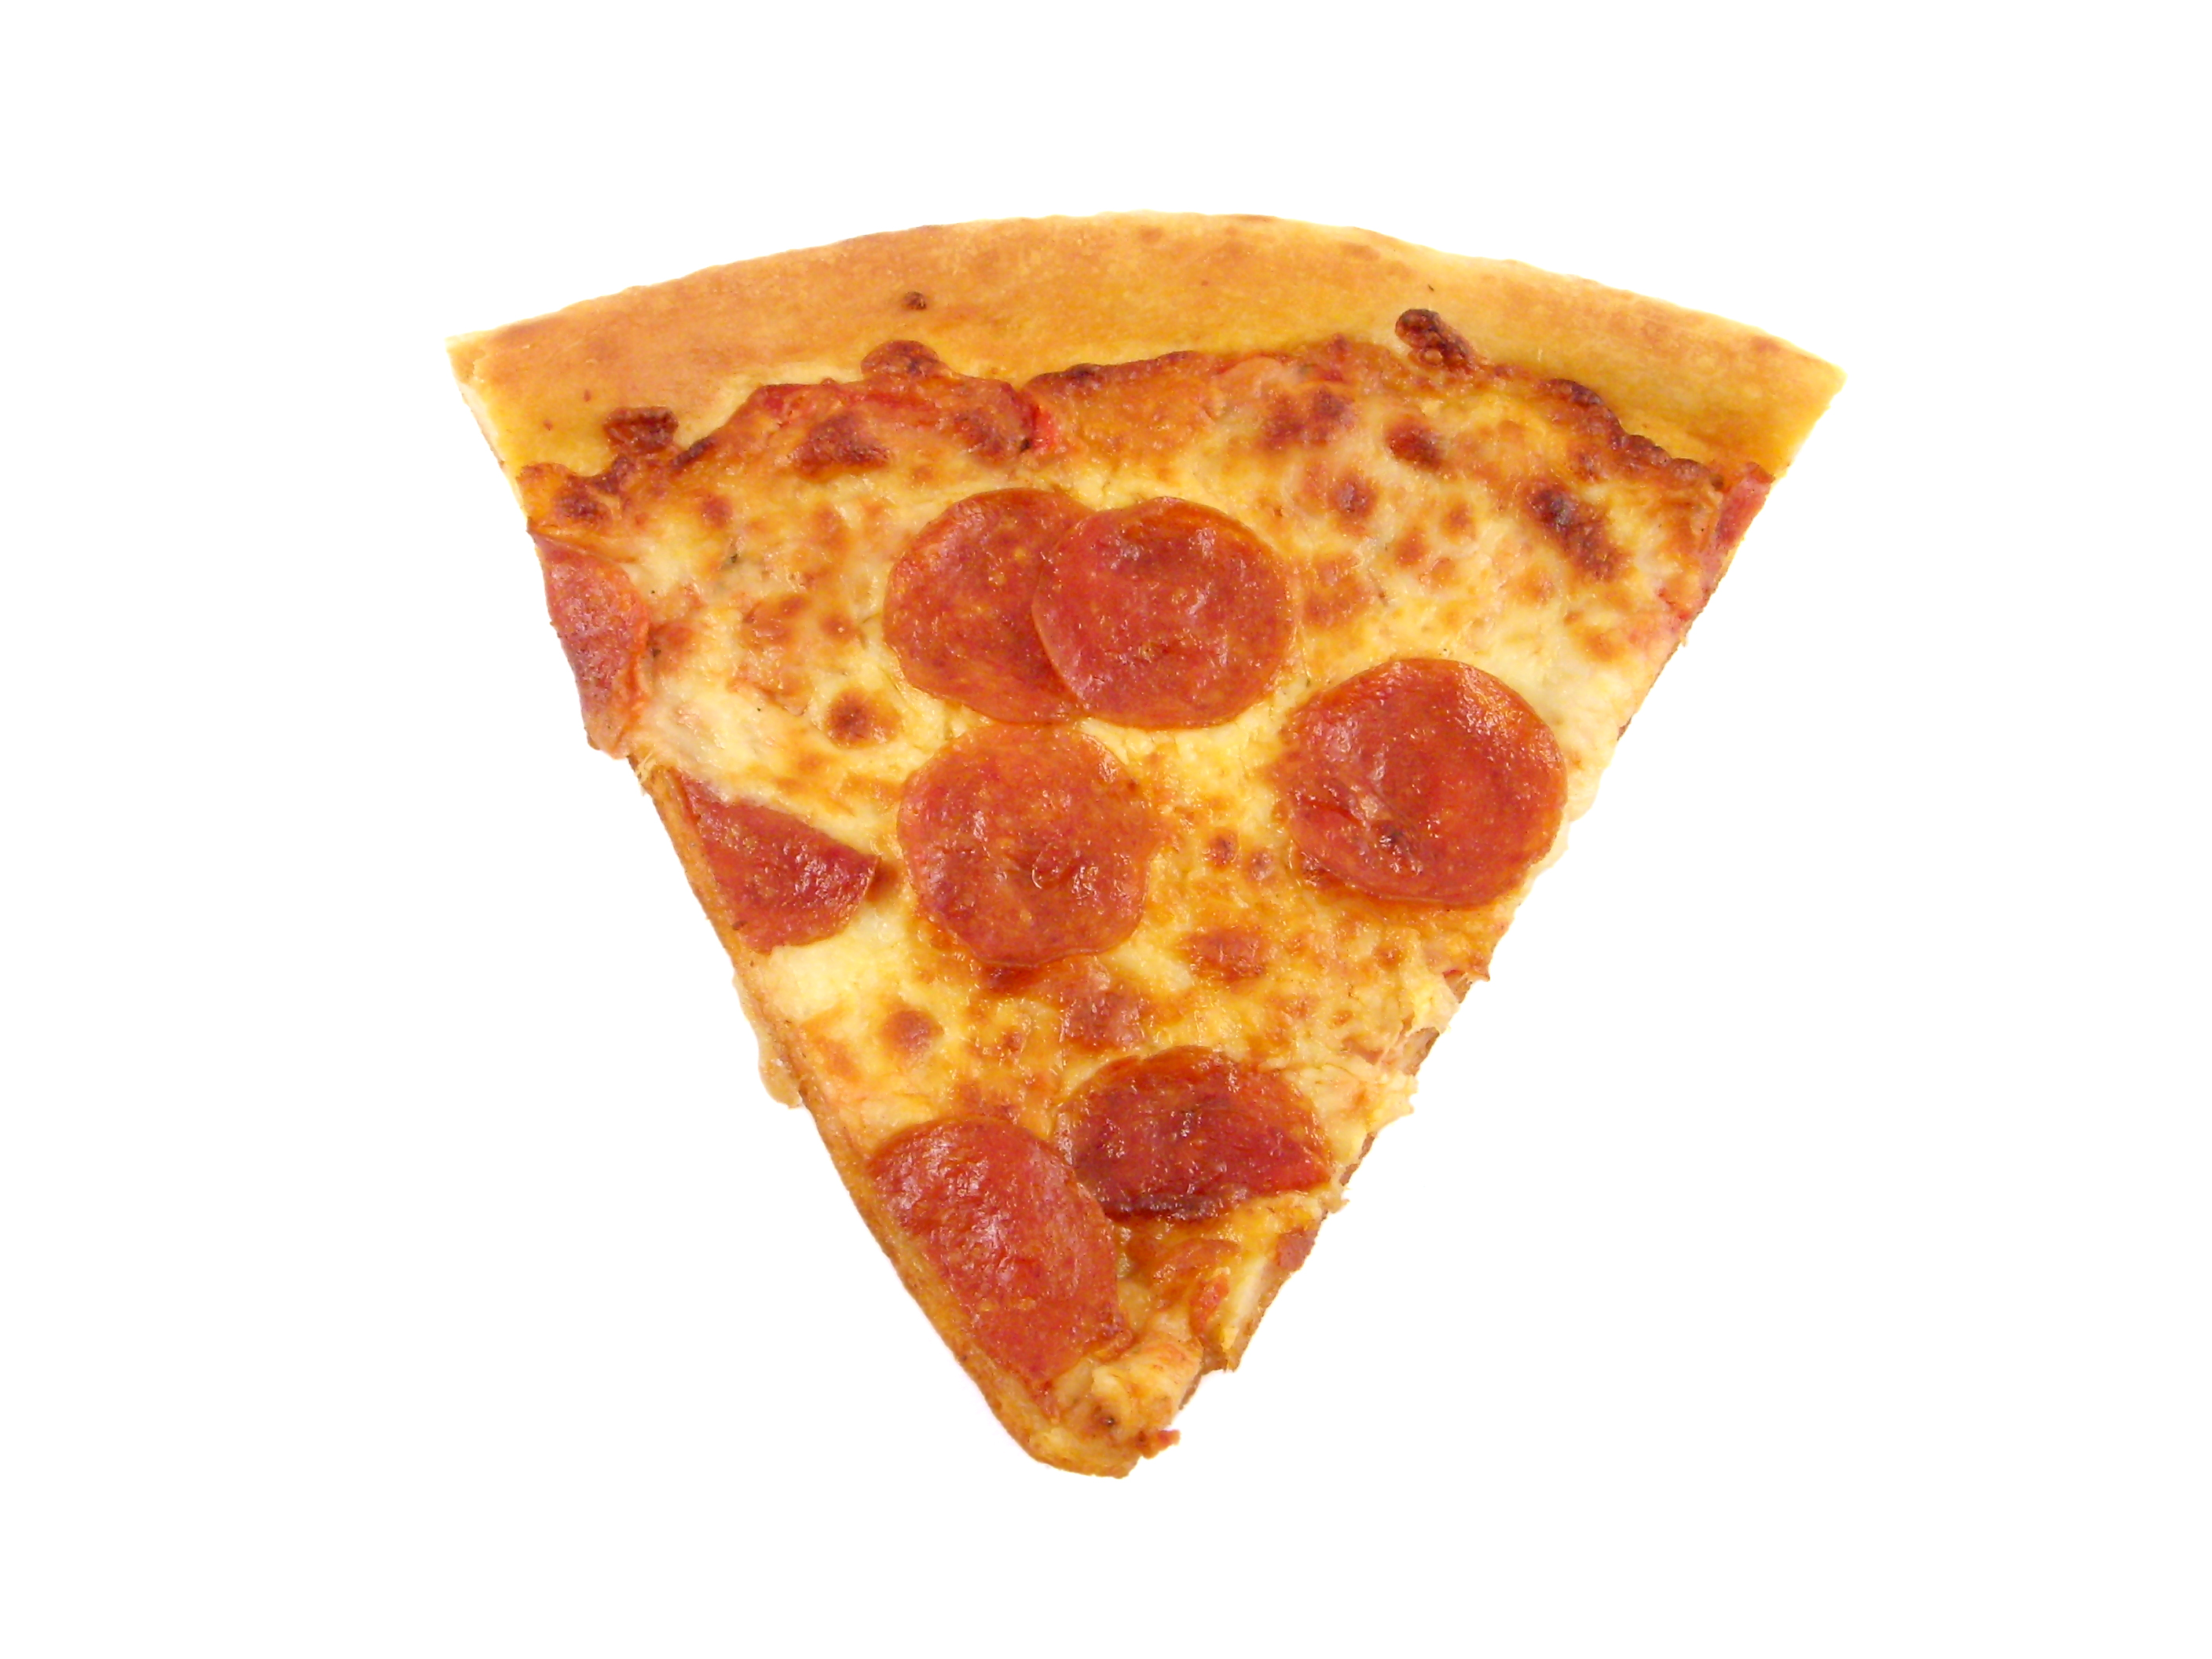 Cheese pizza pizza slice free images at vector clip art - Free PNG Pizza Slice